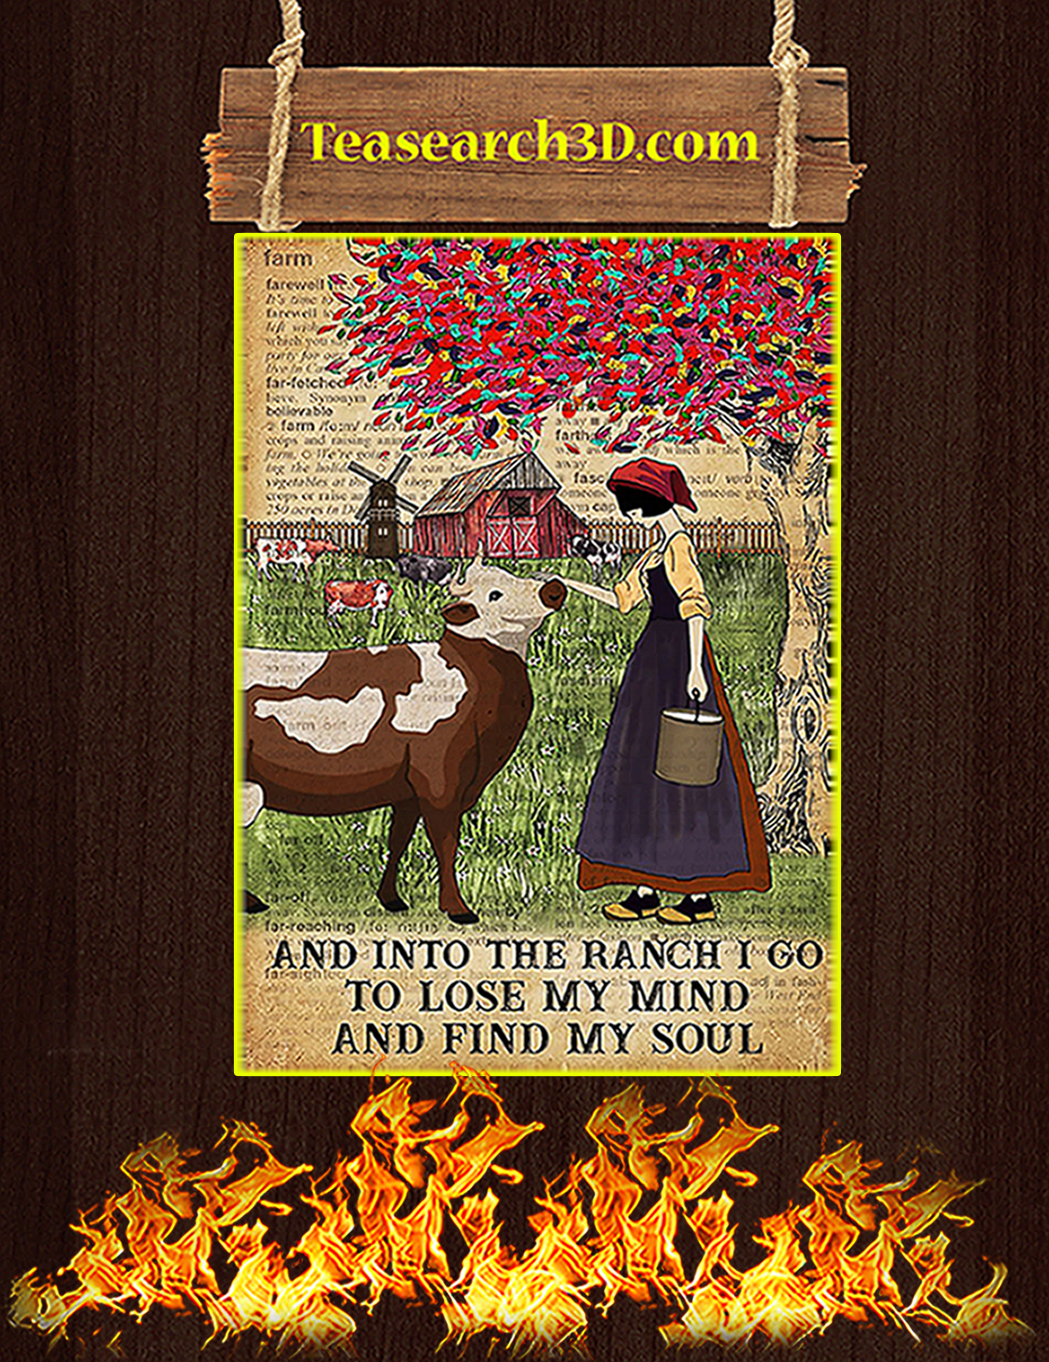 Dictionary cattle farm girl And into the ranch I go to lose my mind and find my soul poster A1